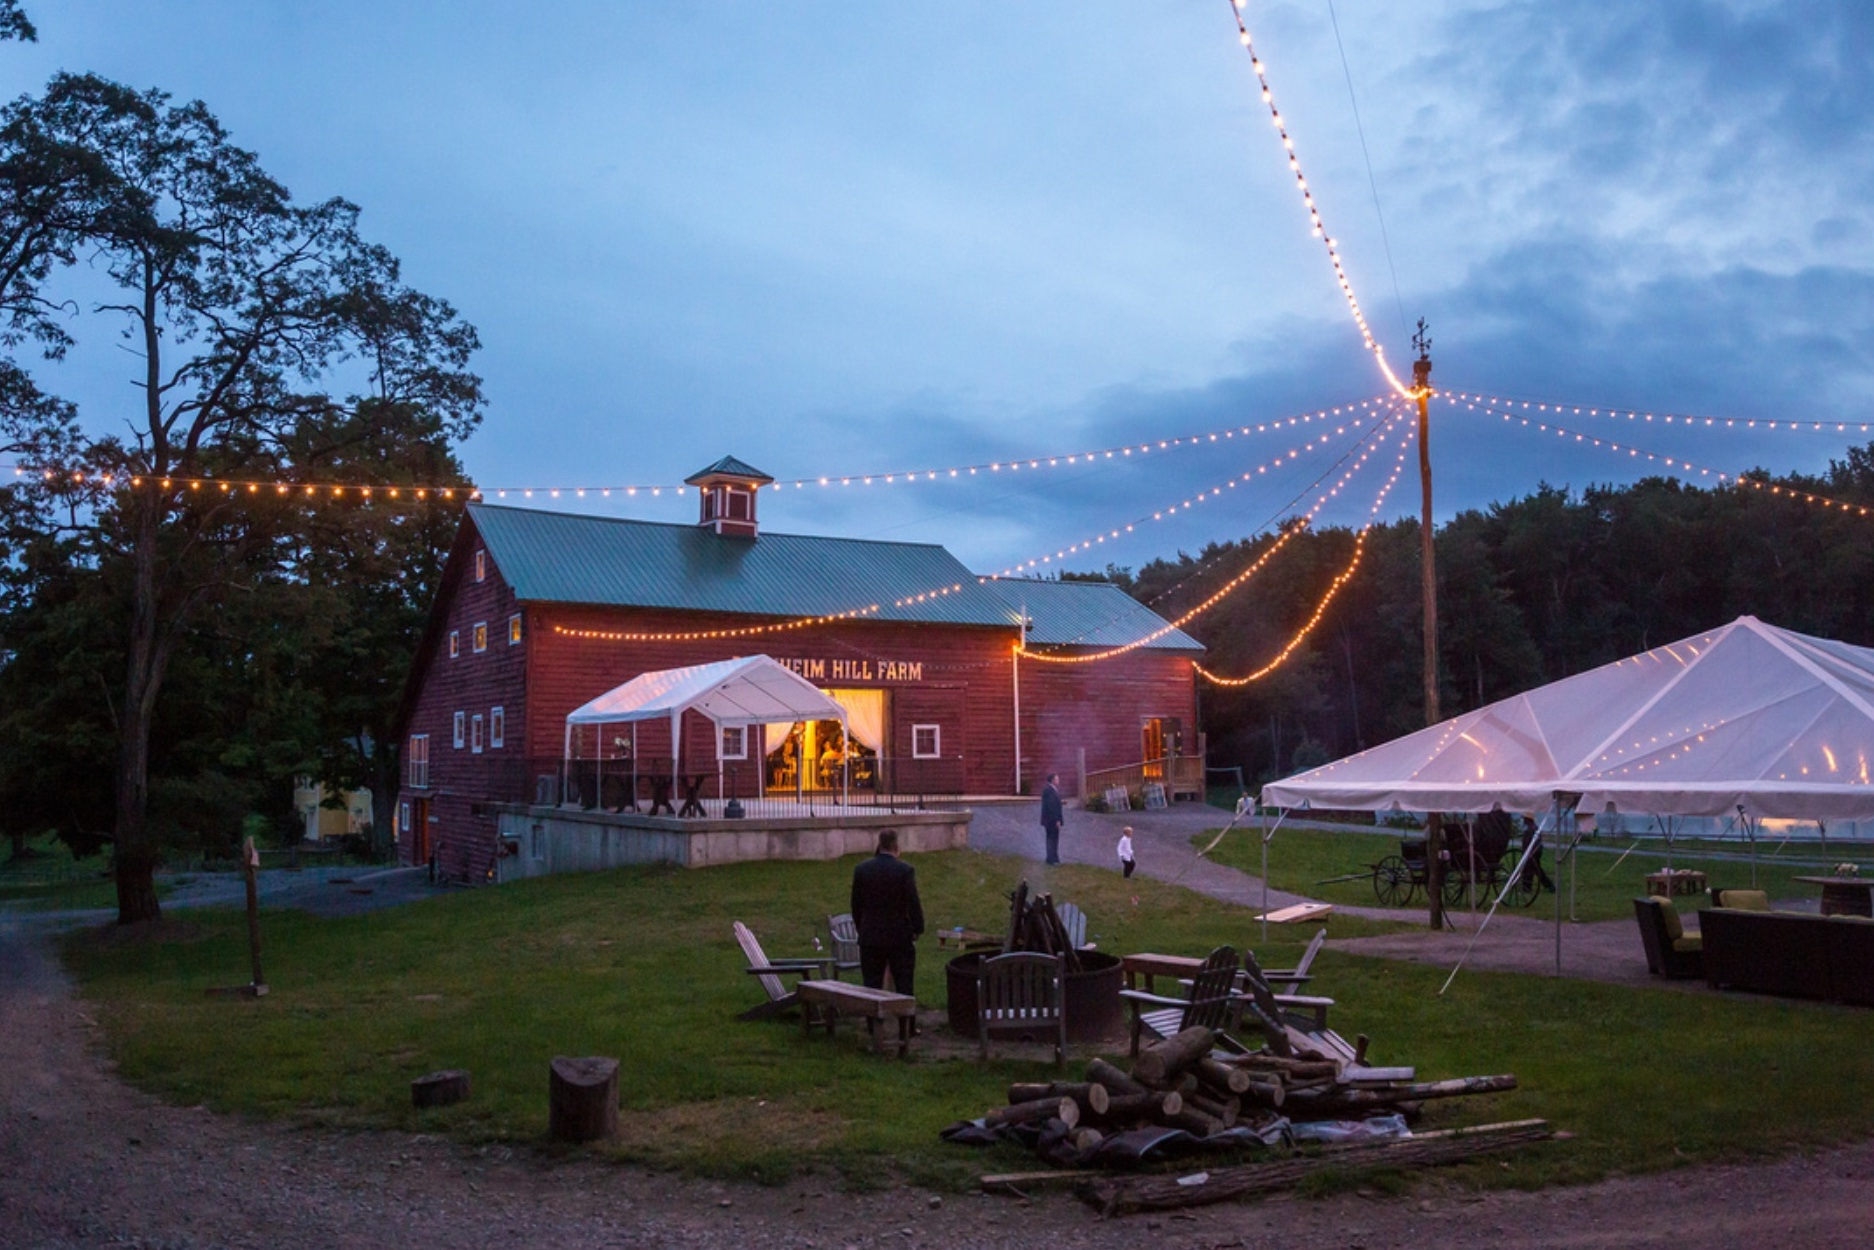 Cocktail Hour Tent, Bonfire Circle and Barn ready for the party